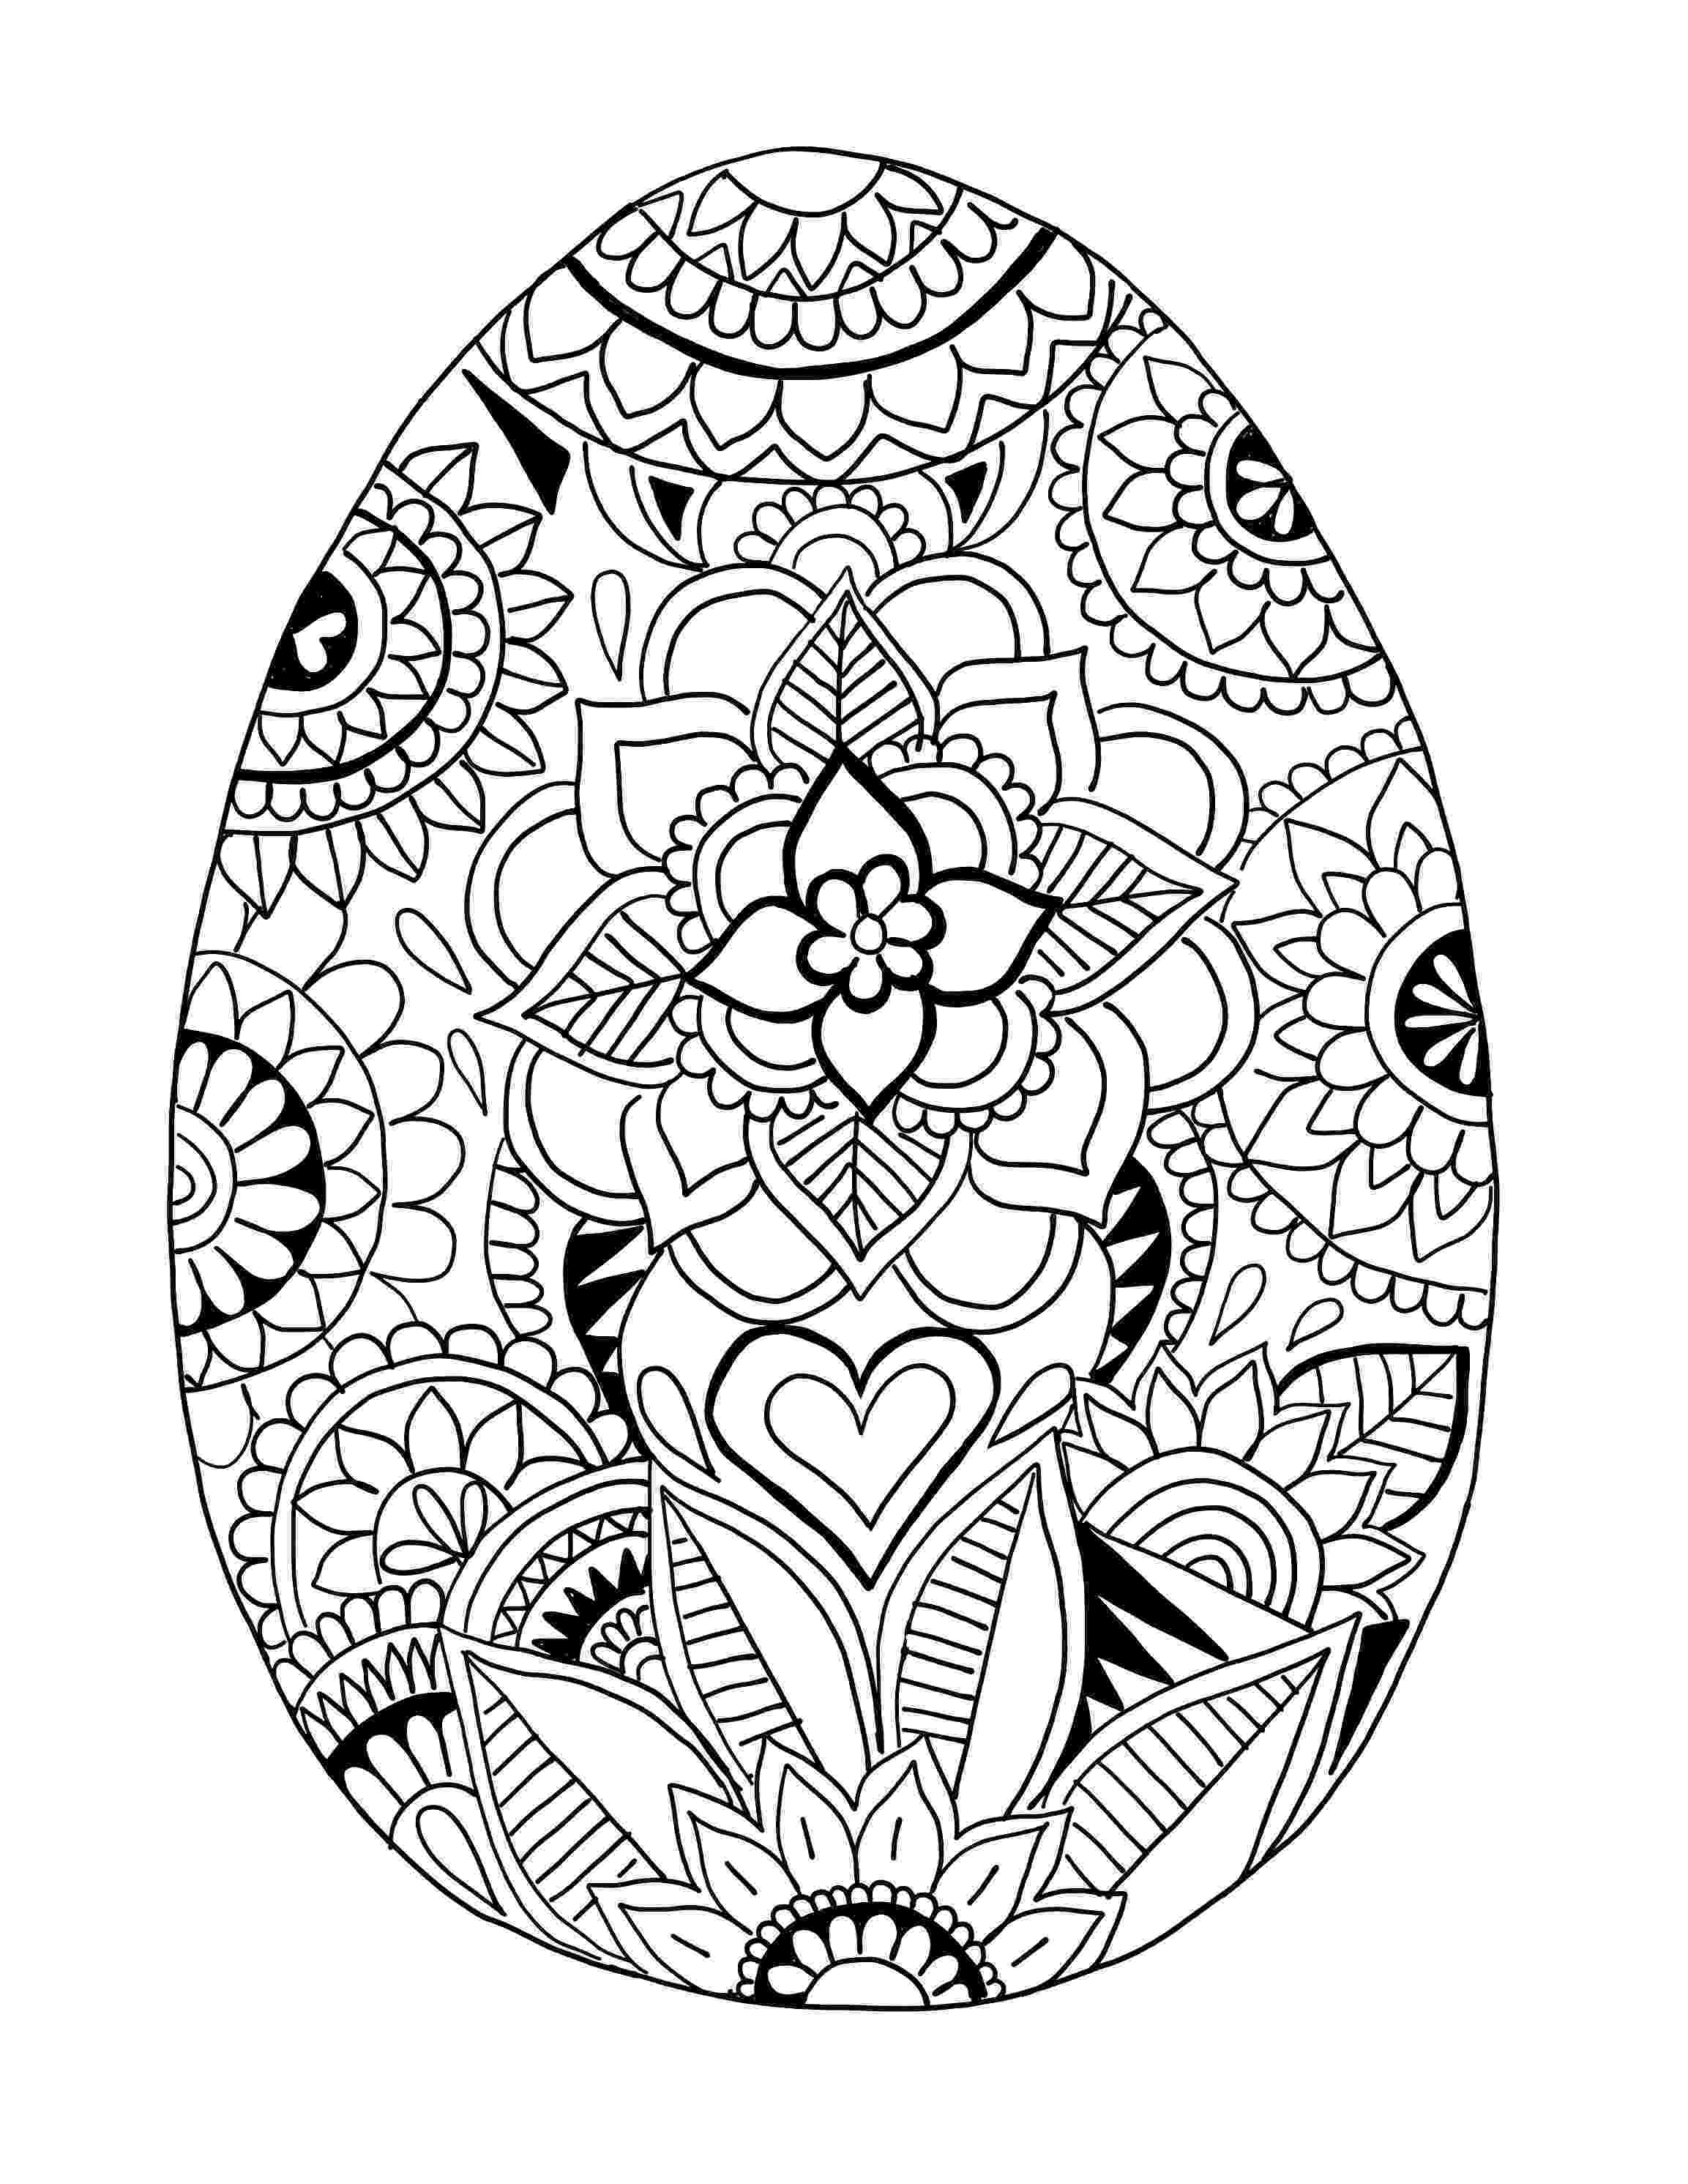 easter colouring pages printable for adults easter egg printable coloring page ooly easter colouring for adults printable pages